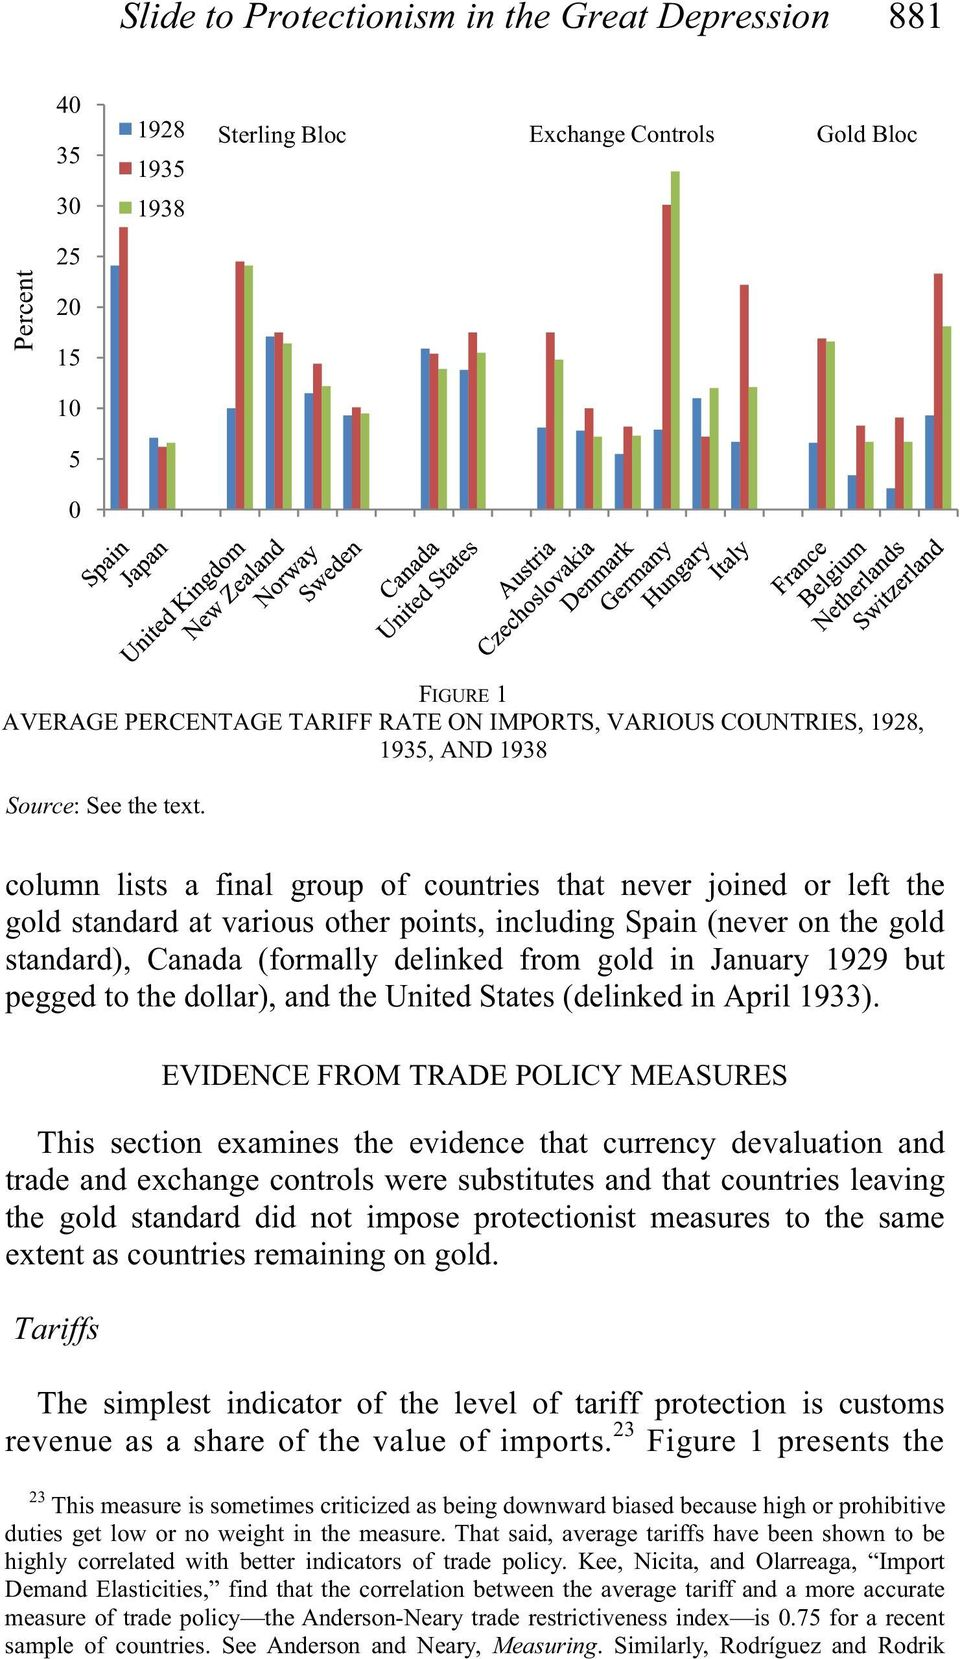 column lists a final group of countries that never joined or left the gold standard at various other points, including Spain (never on the gold standard), Canada (formally delinked from gold in